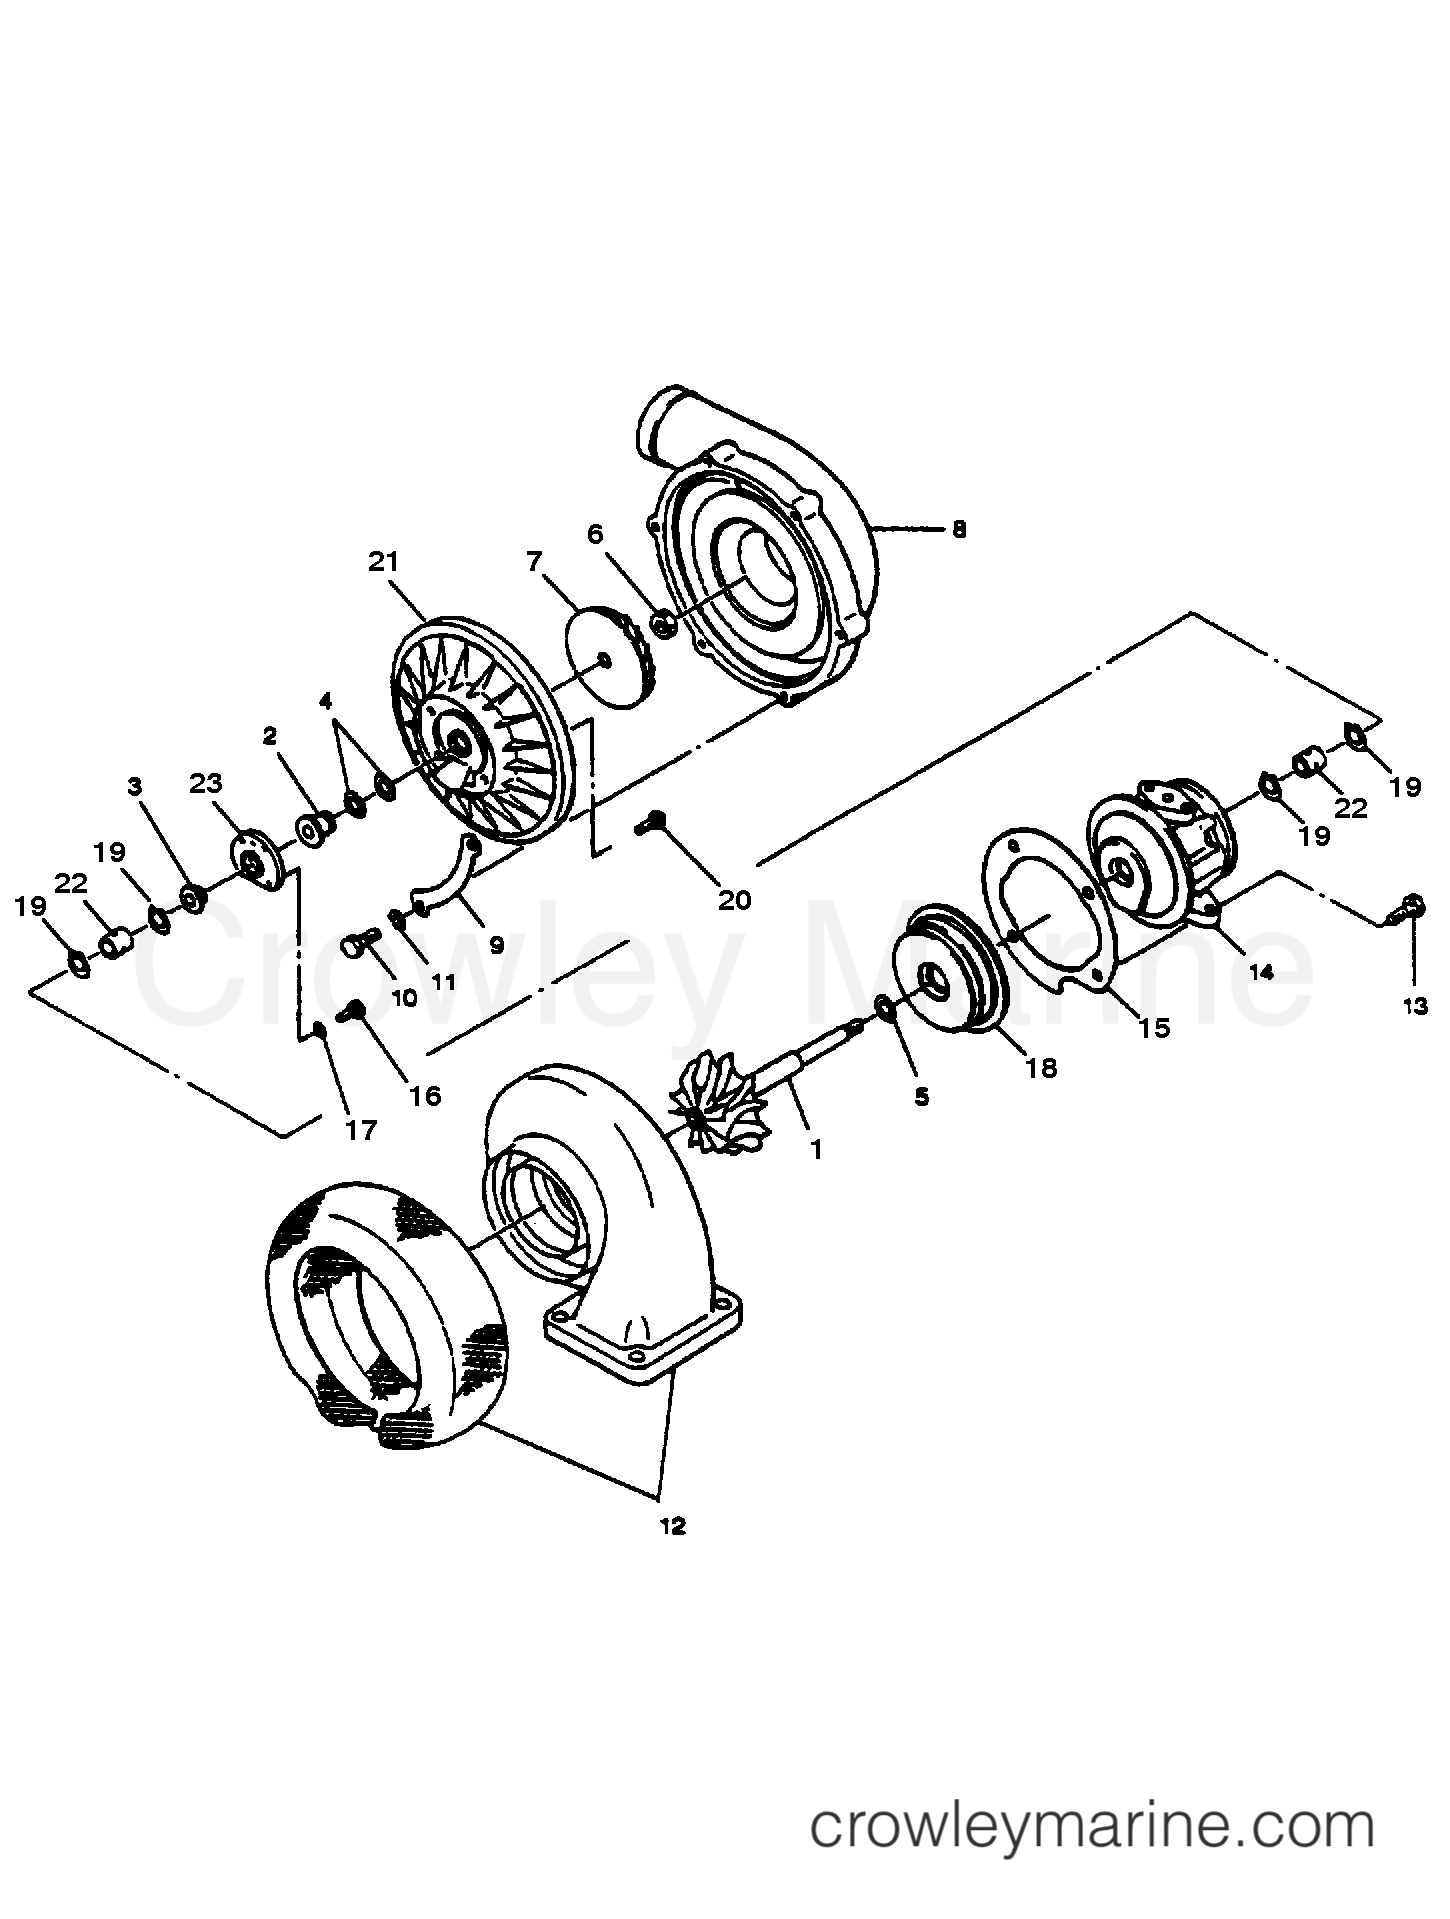 Turbocharger Assembly